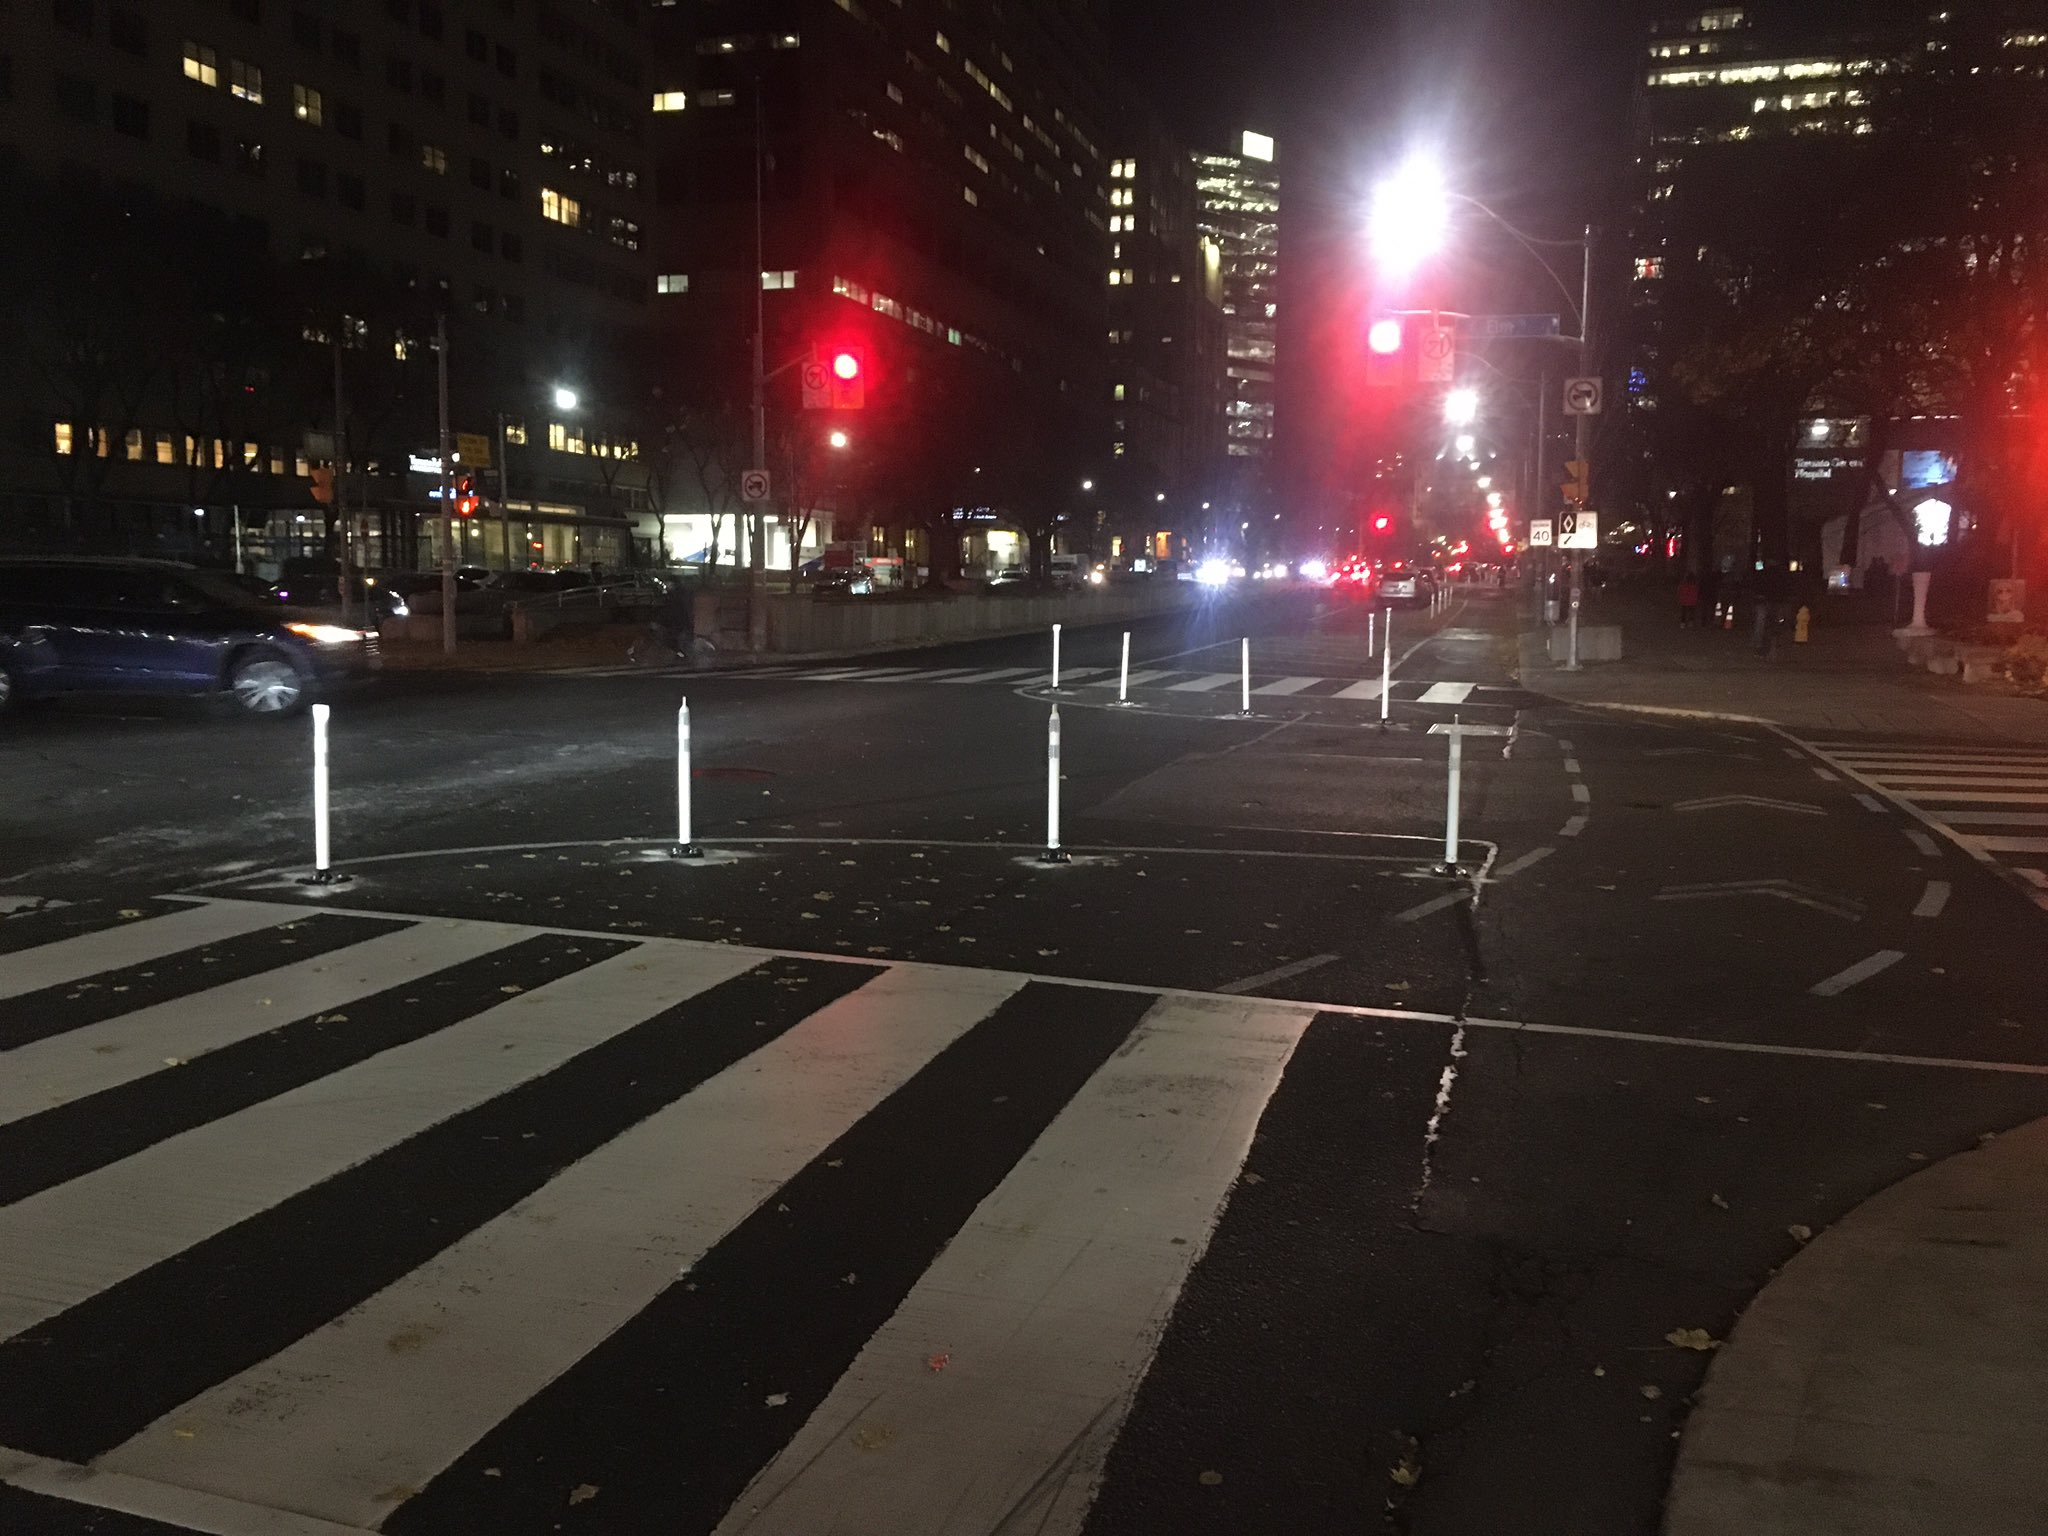 Reflective flexi-posts stand out in a dimly lit night shot. They outline the intersection beyond the crosswalk and to the left of the bike lane.